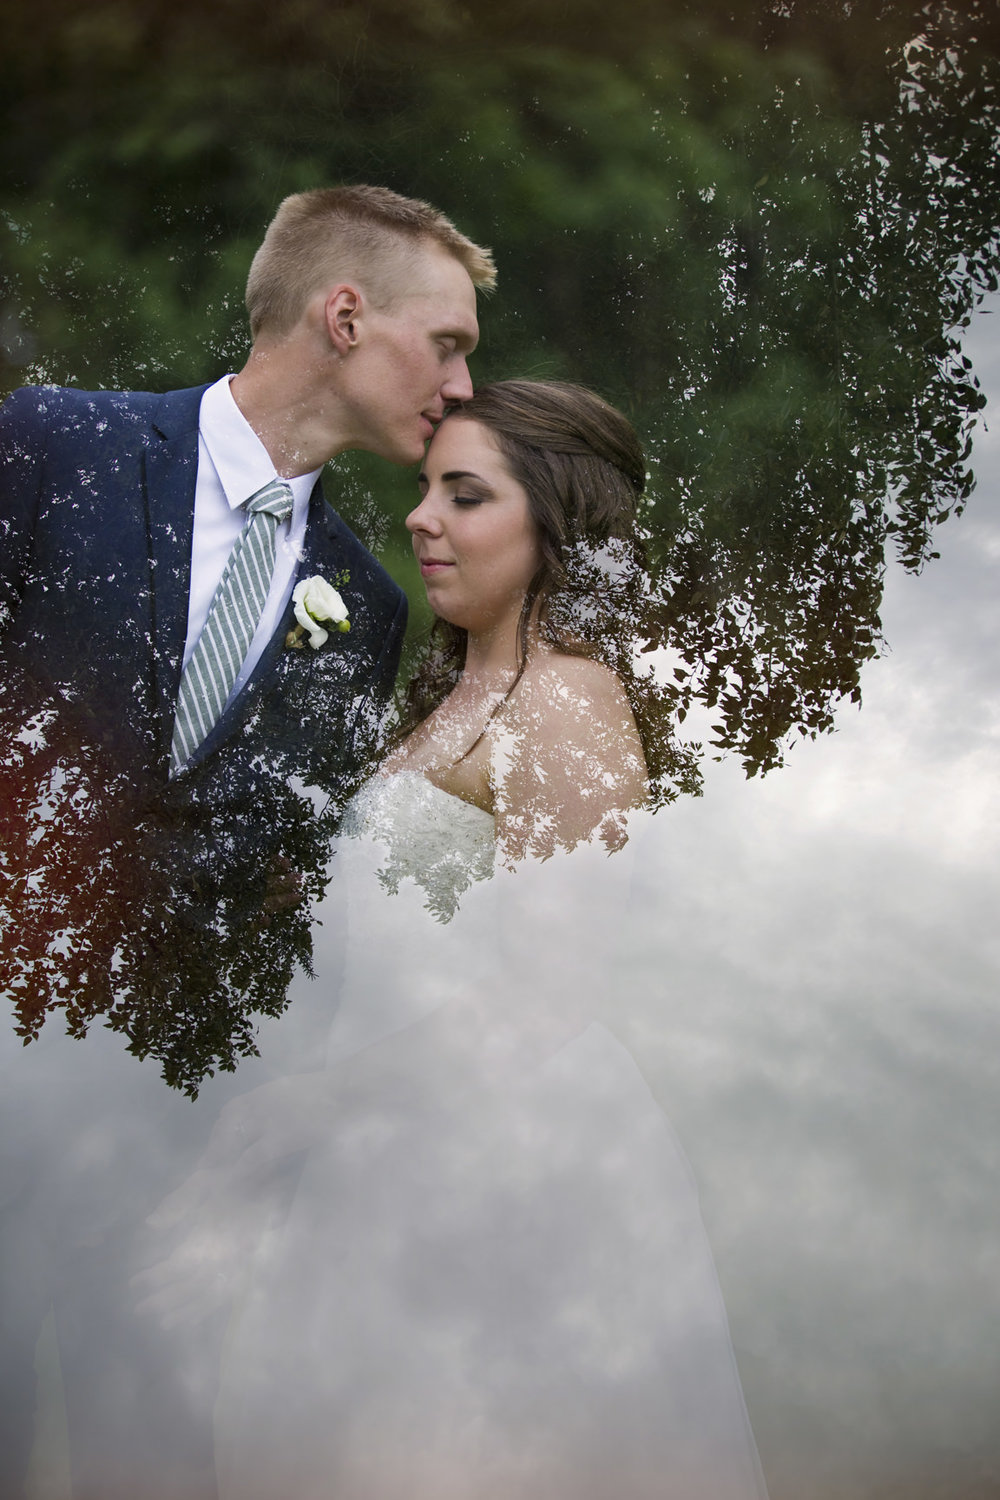 Perth Wedding in Stewart Park by Ottawa Wedding Photographer Joey Rudd Photography Double Exposure